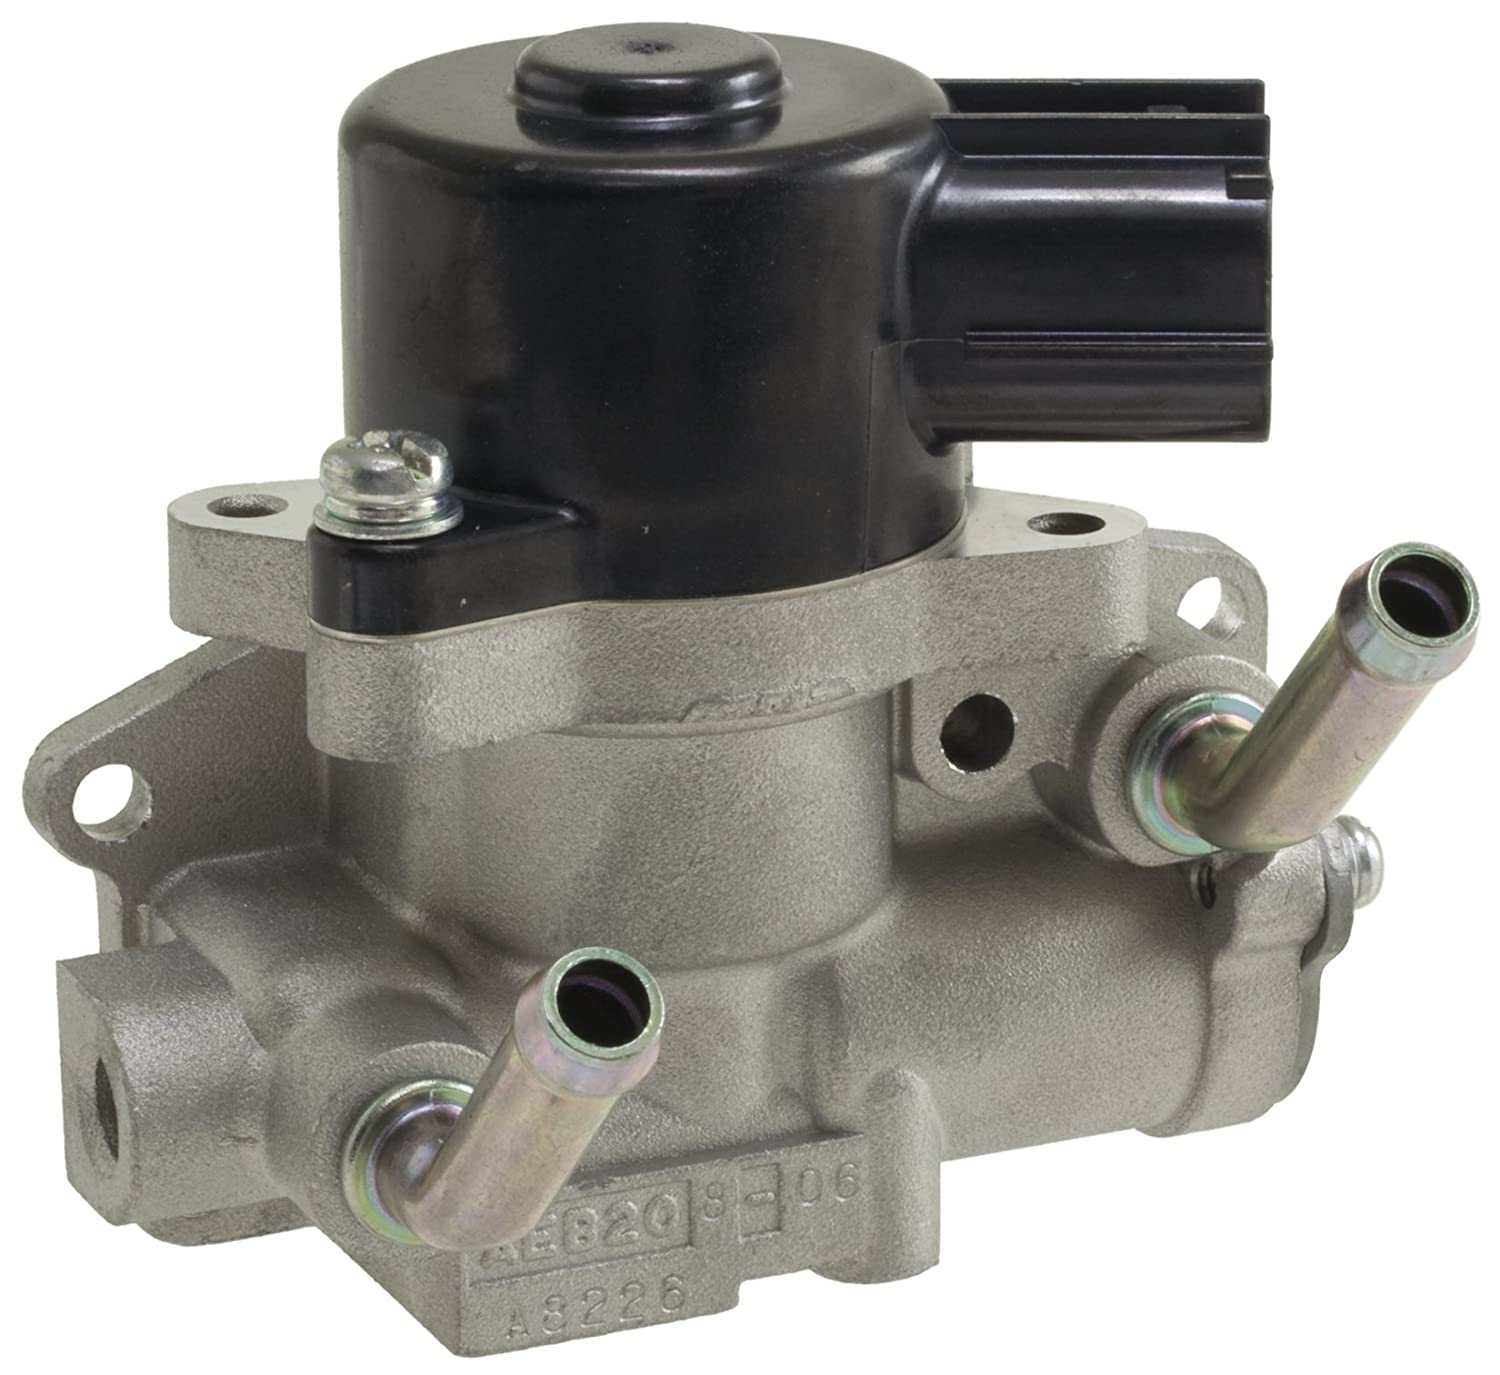 WVE by NTK 2H1245 Idle Air Control Valve